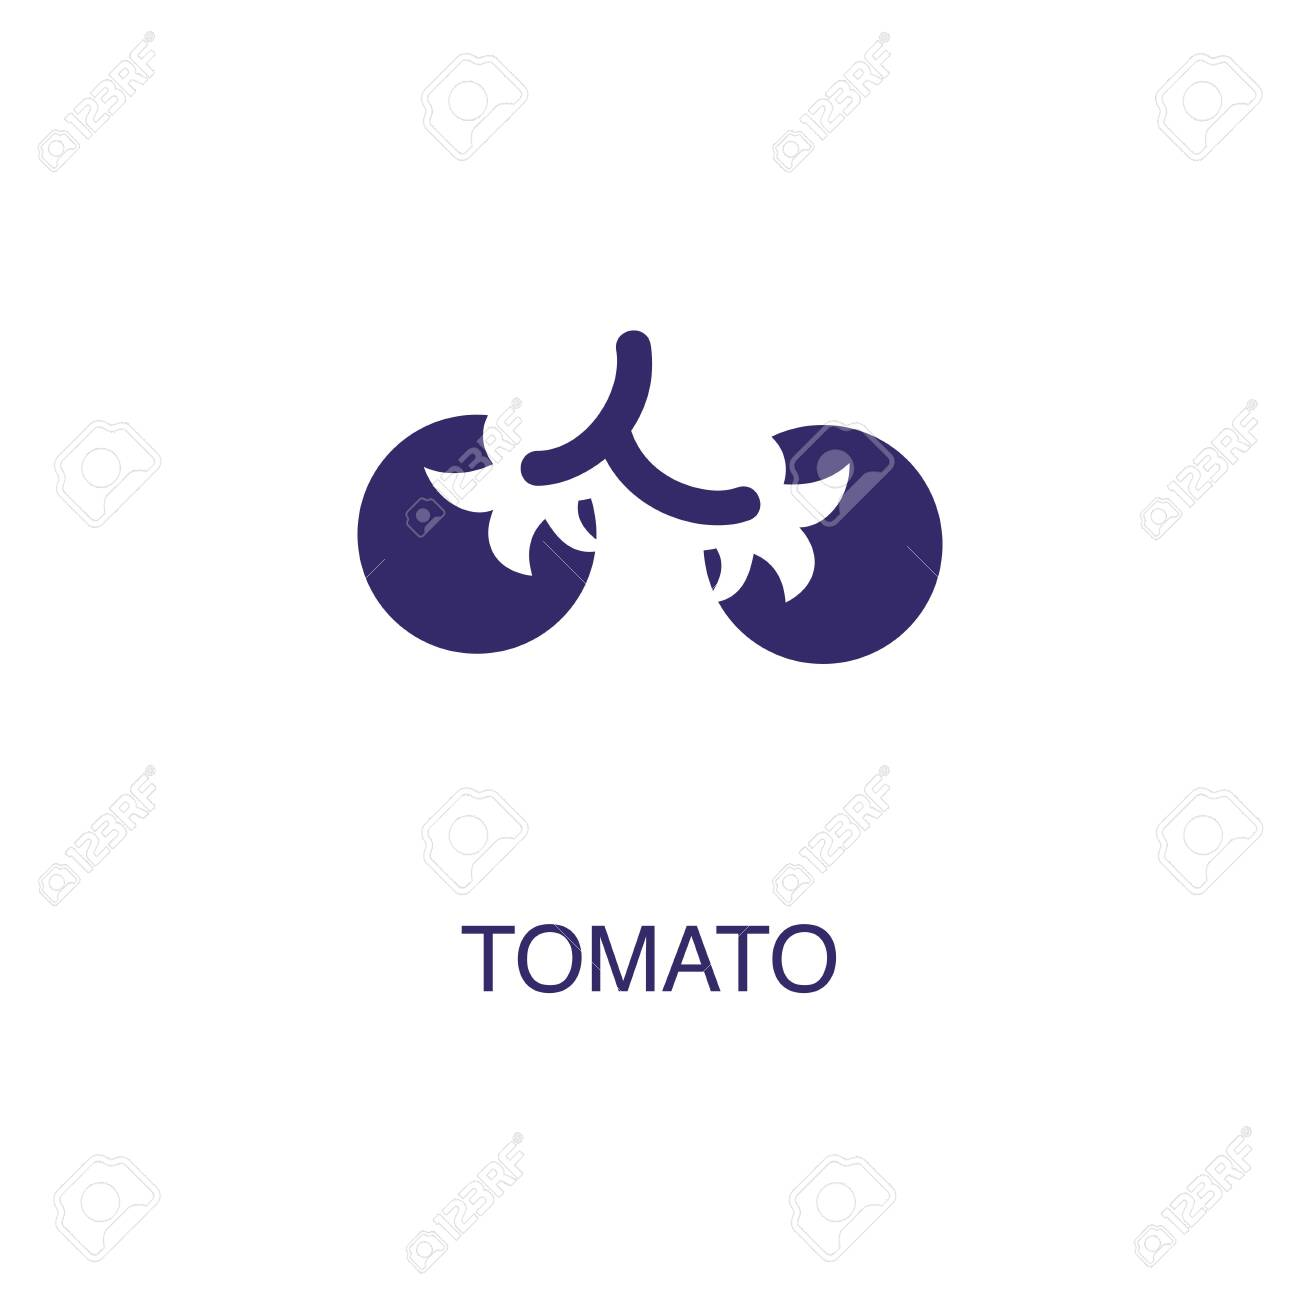 Tomato element in flat simple style on white background. Tomato icon, with text name concept template - 134450571